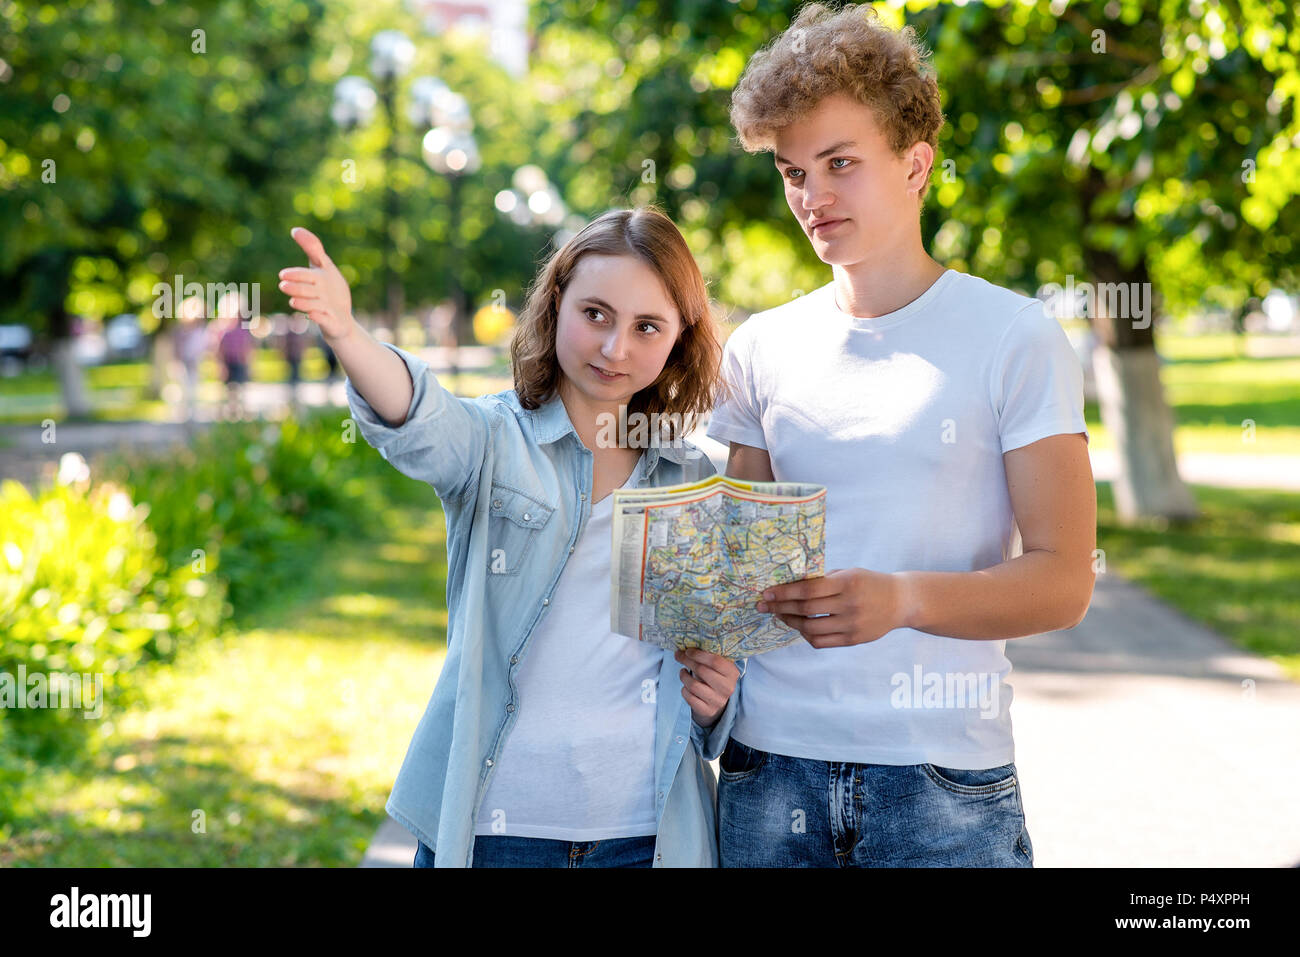 The girl shows the man direction of movement. Summer in nature. The passer-by shows where to go to the tourist. Young couple walking in the park in hands holding a road map. - Stock Image